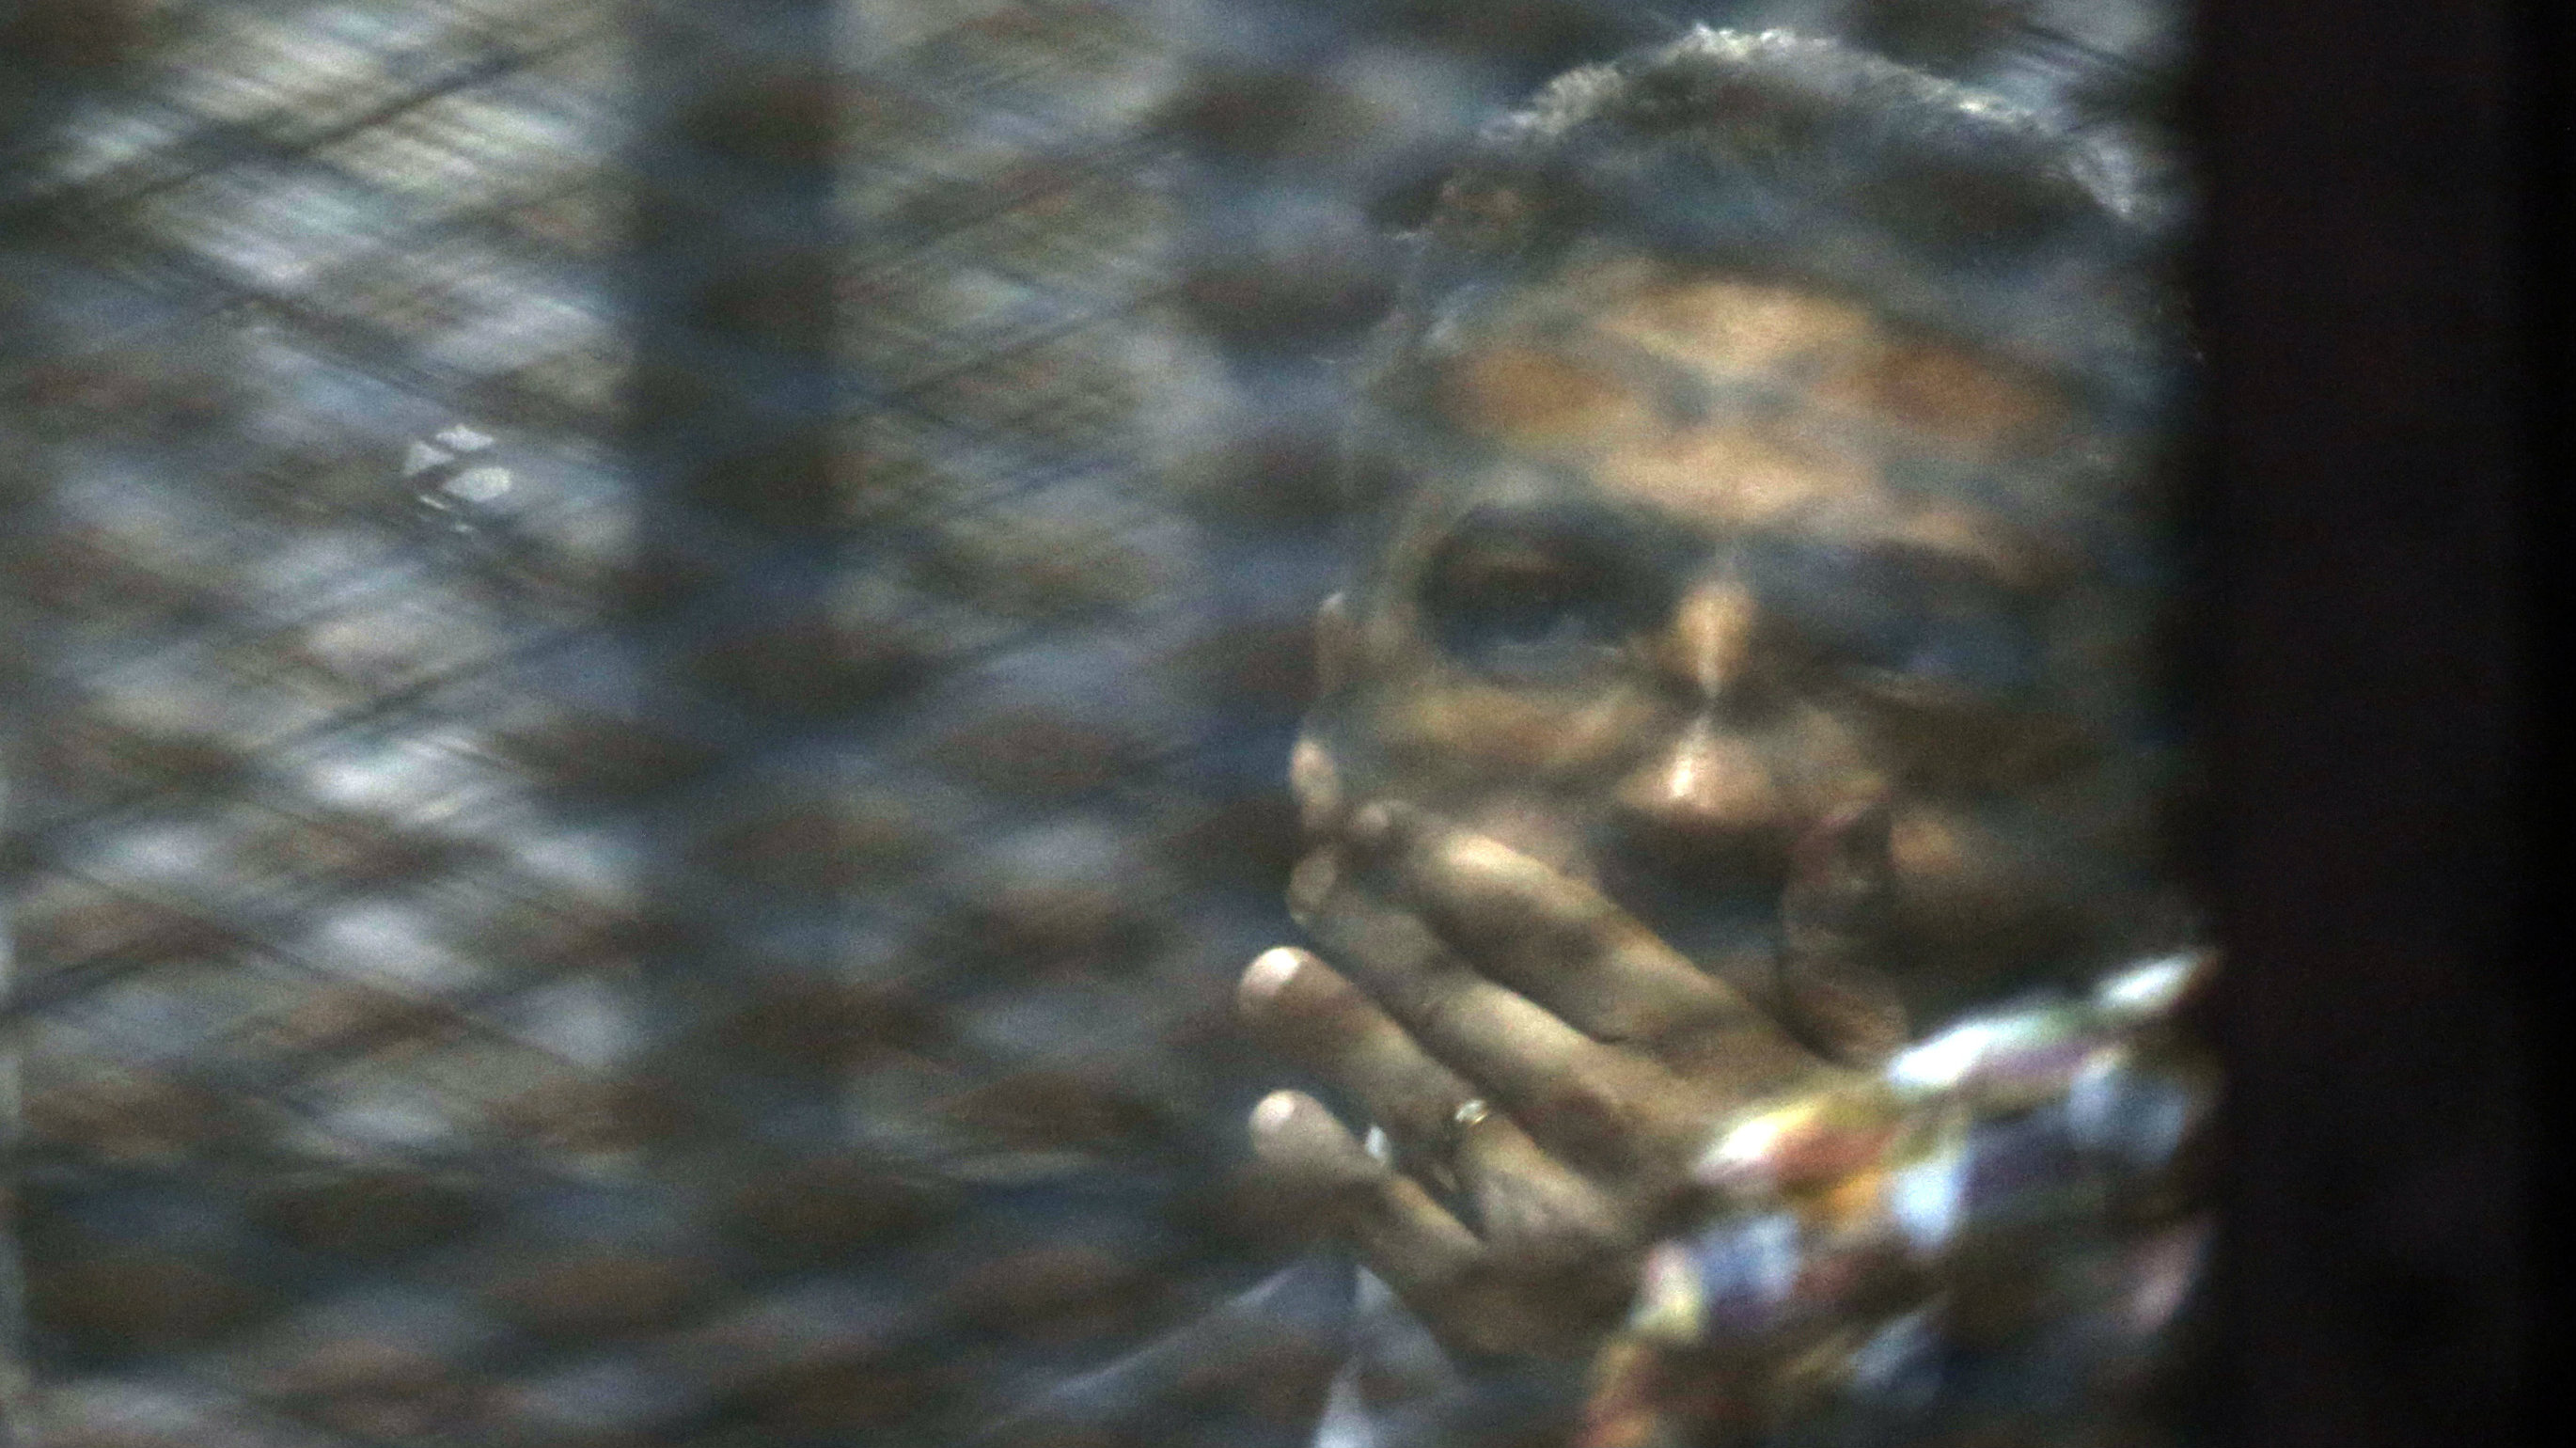 Canadian Al-Jazeera English journalist Mohammed Fahmy, listens to his verdict in a soundproof glass cage inside a makeshift courtroom in Tora prison in Cairo, Egypt, Saturday, Aug. 29, 2015.